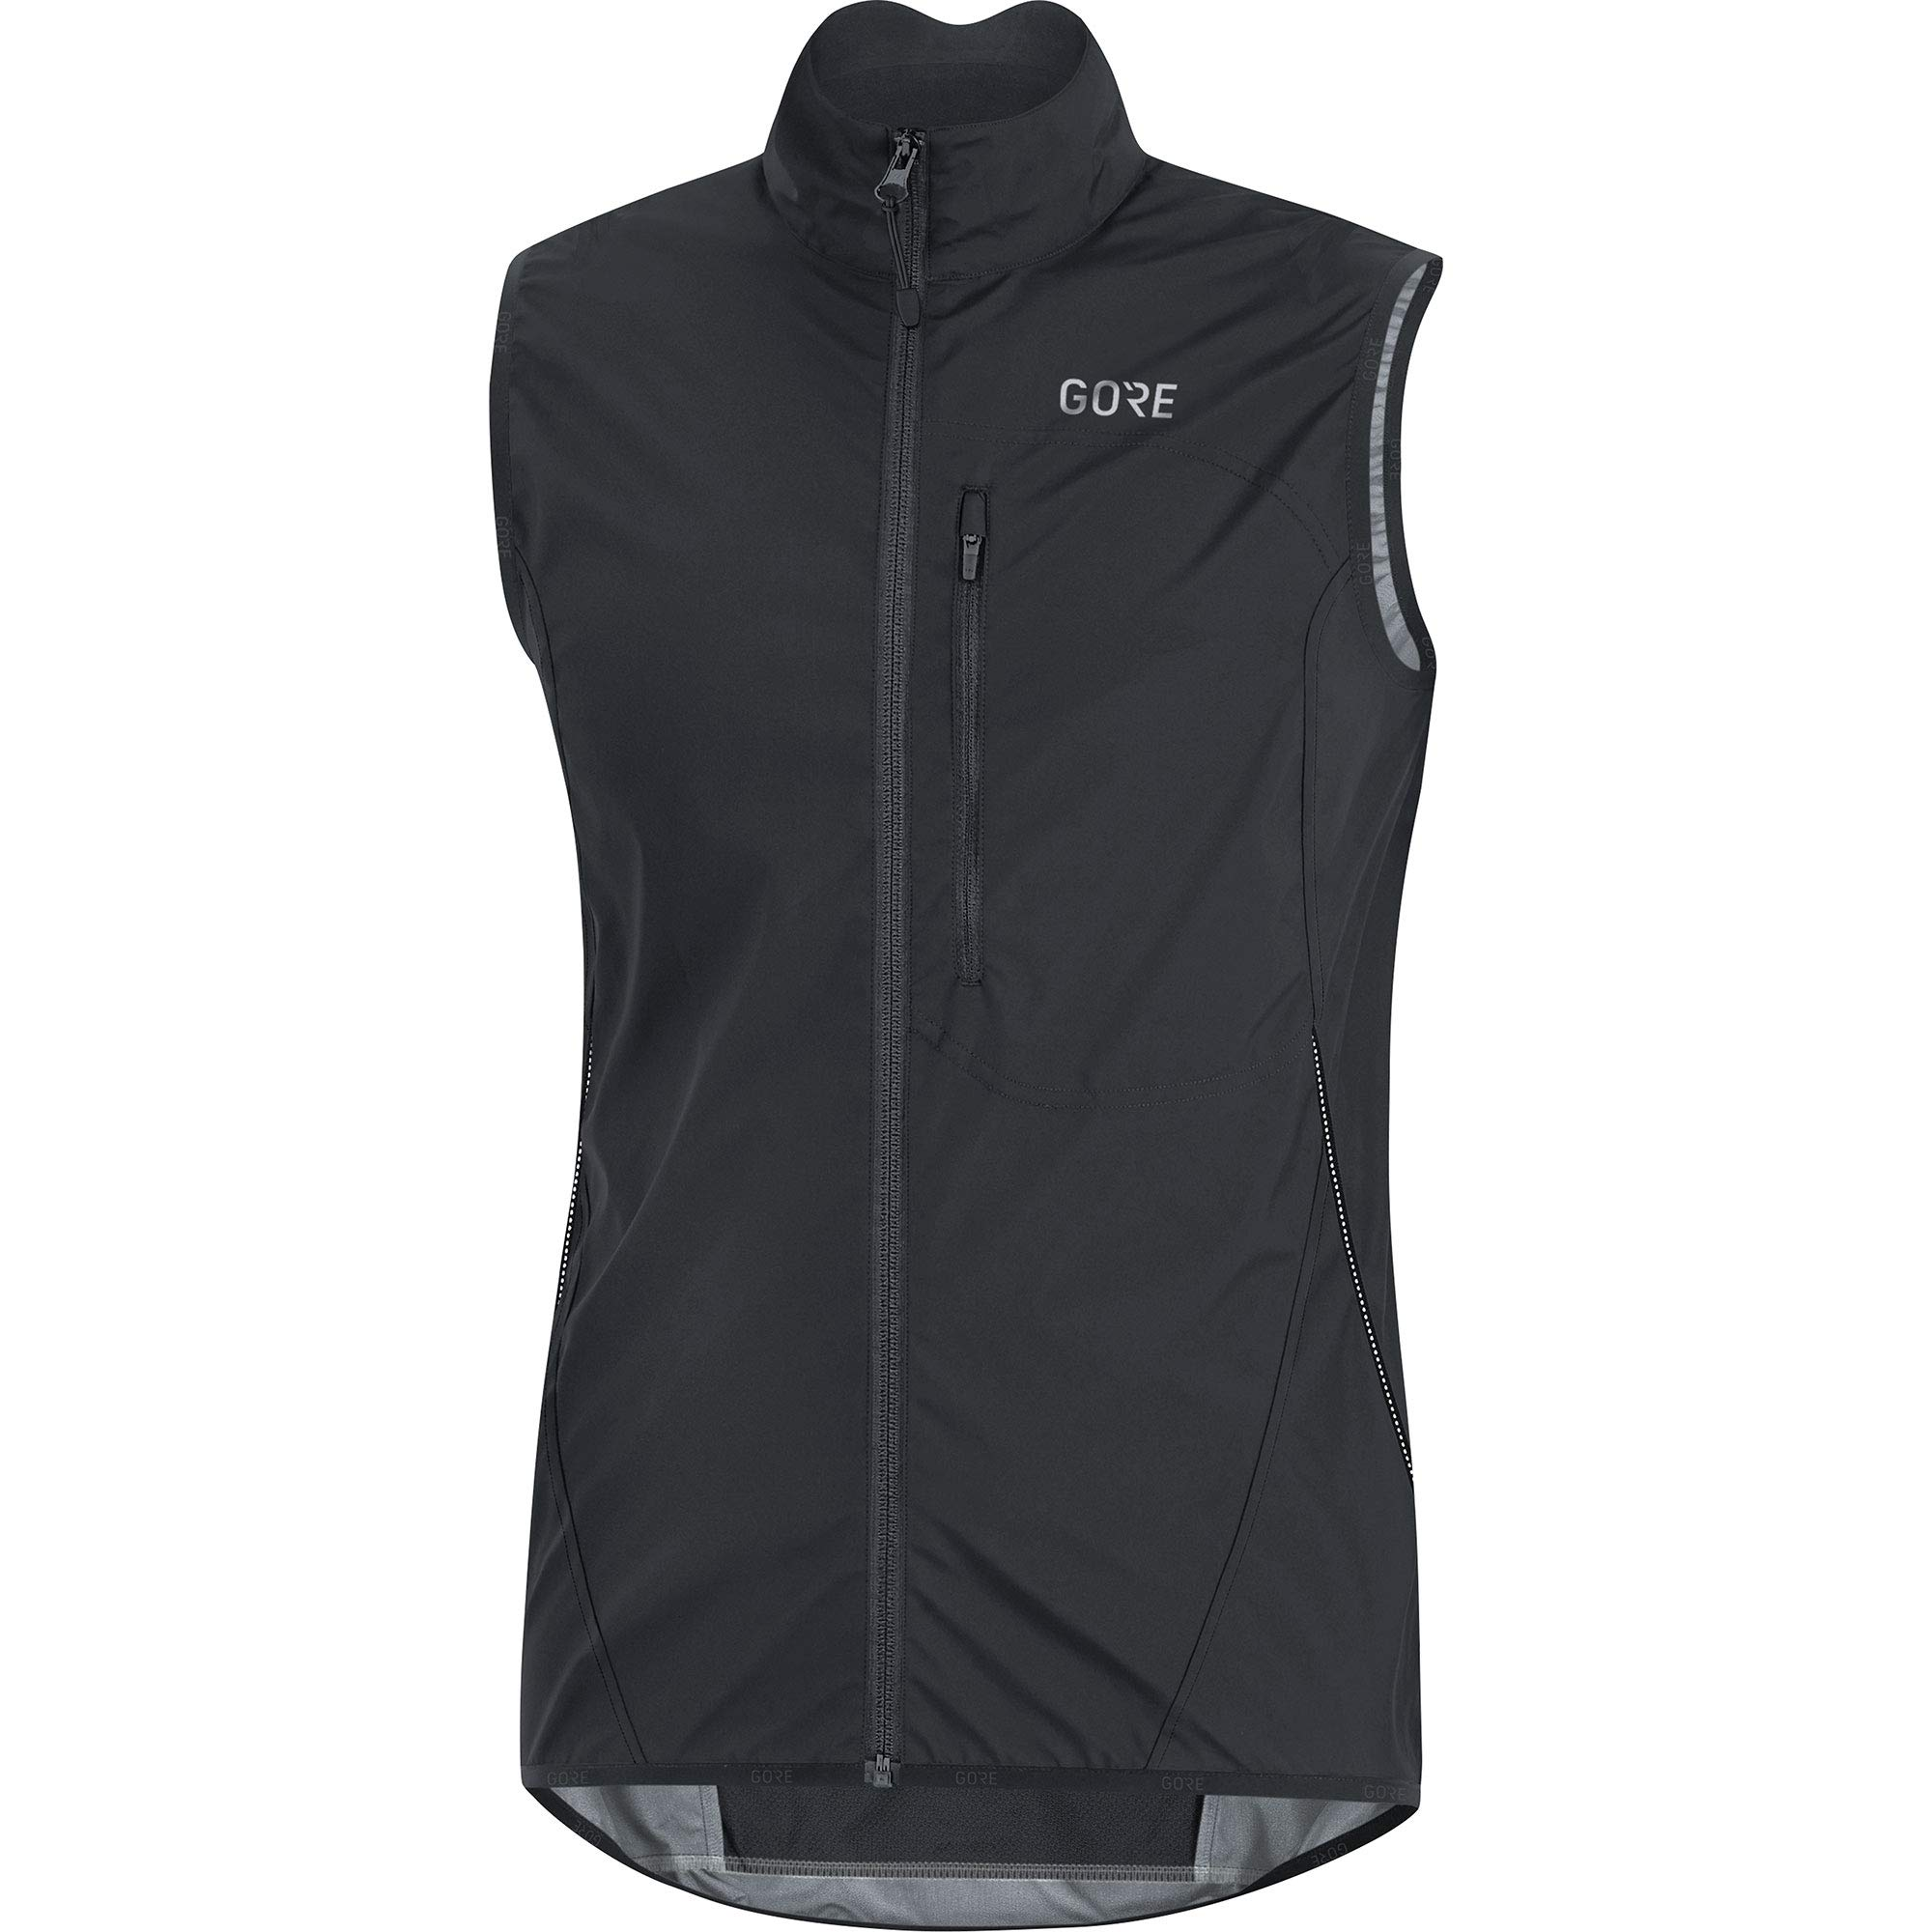 GORE Wear C3 Men's Vest GORE WINDSTOPPER, S, Black by GORE WEAR